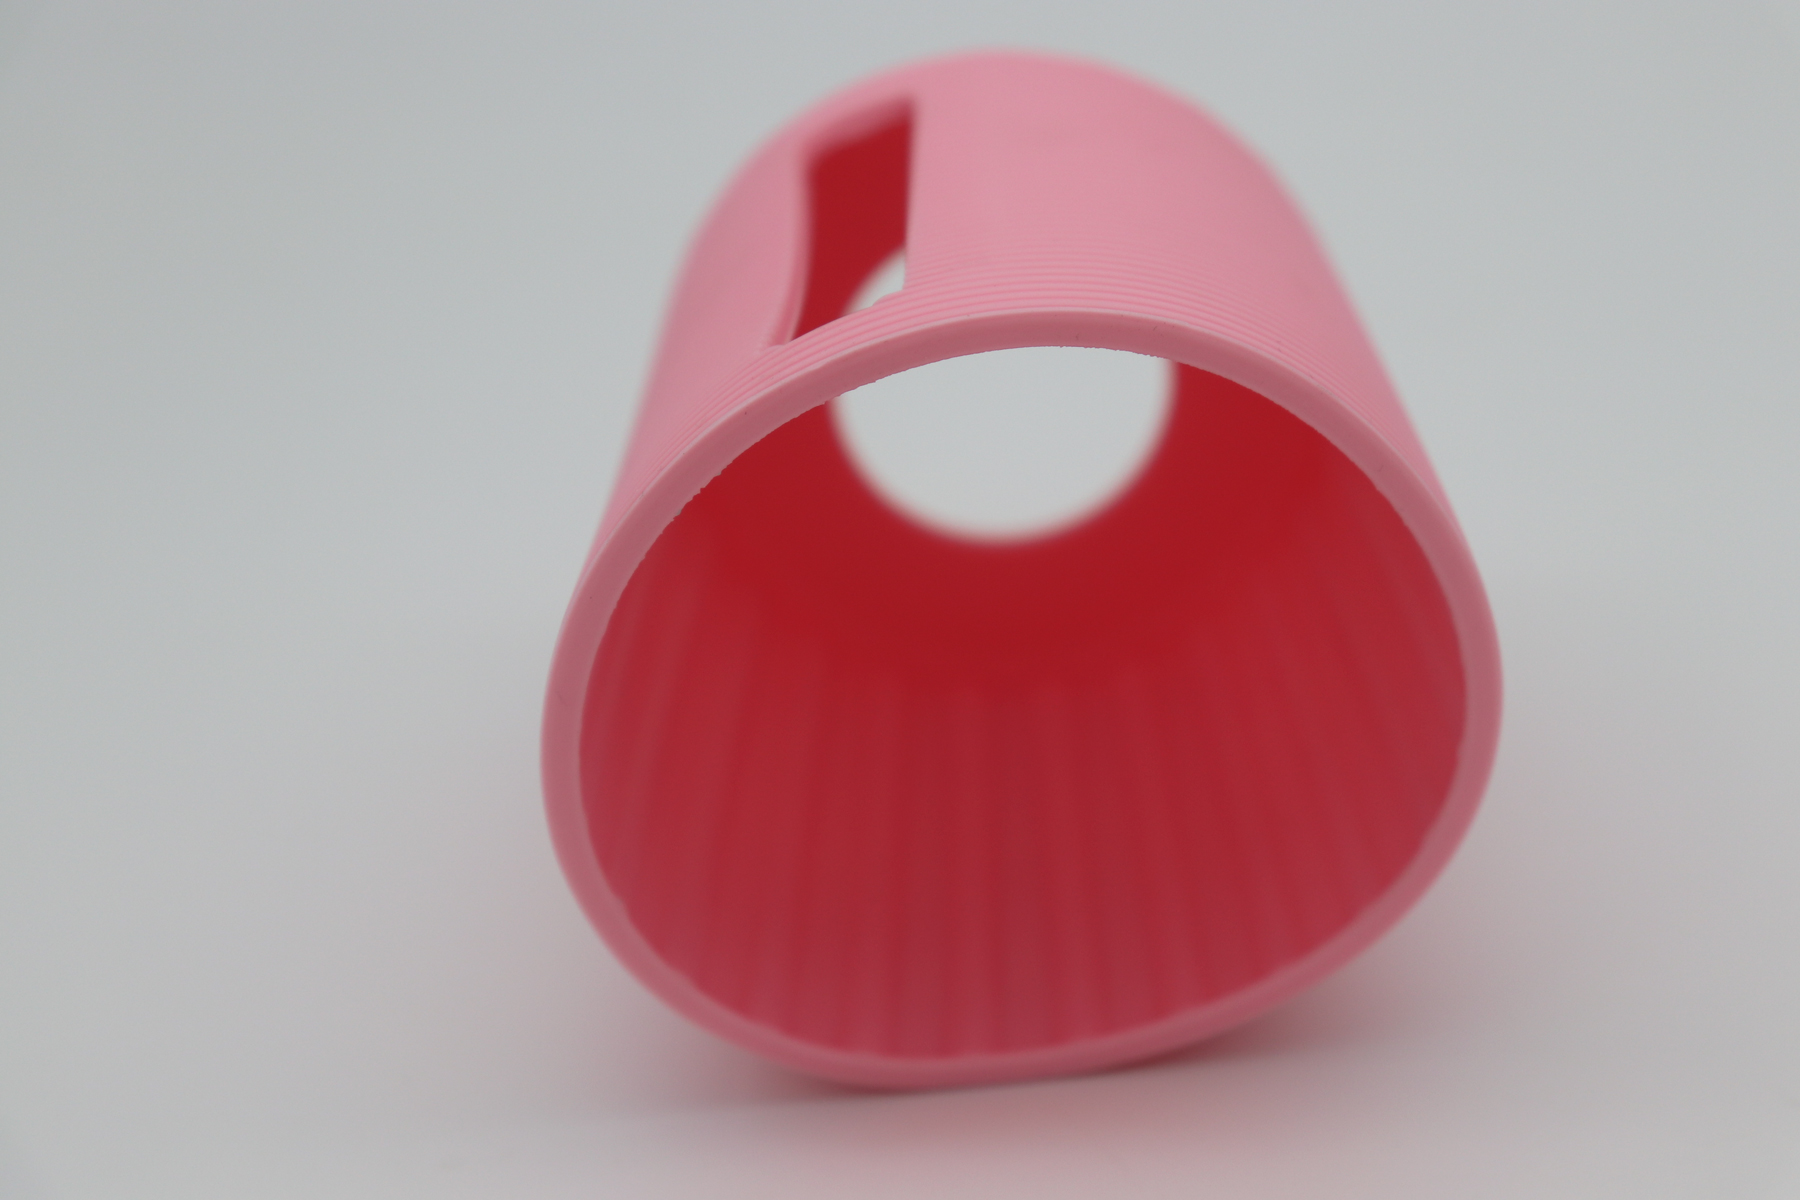 http://www.refinehksilicone.cn/data/images/product/20180417100204_123.jpg